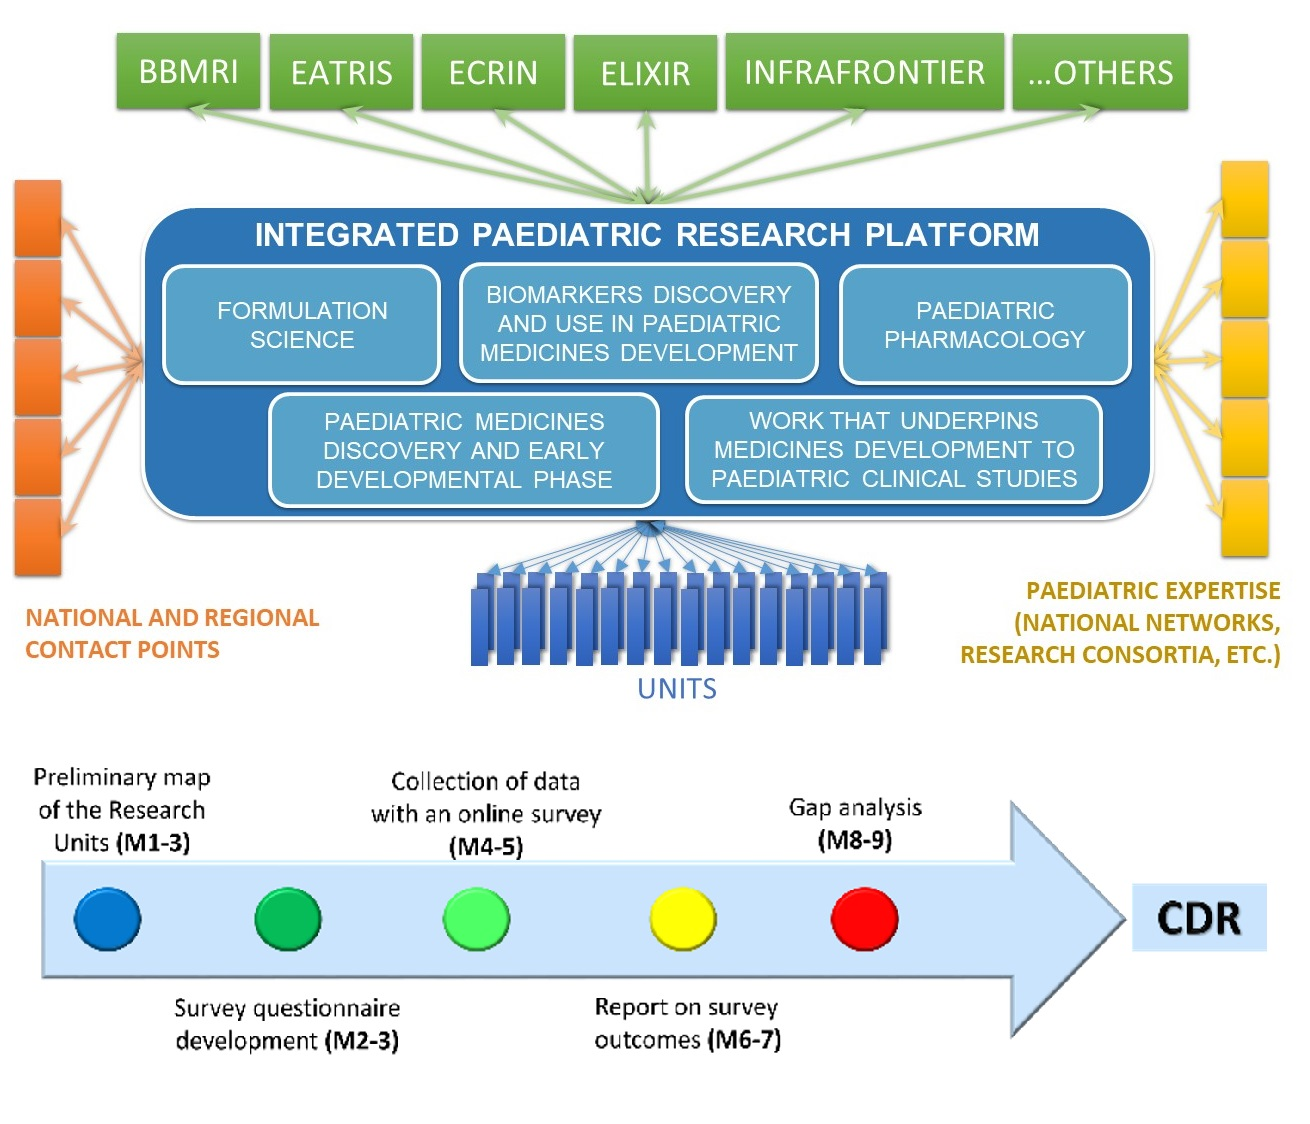 EPTRI – European Paediatric Translational Research Infrastructure. Bridging the gaps of the paediatric excellence medicine